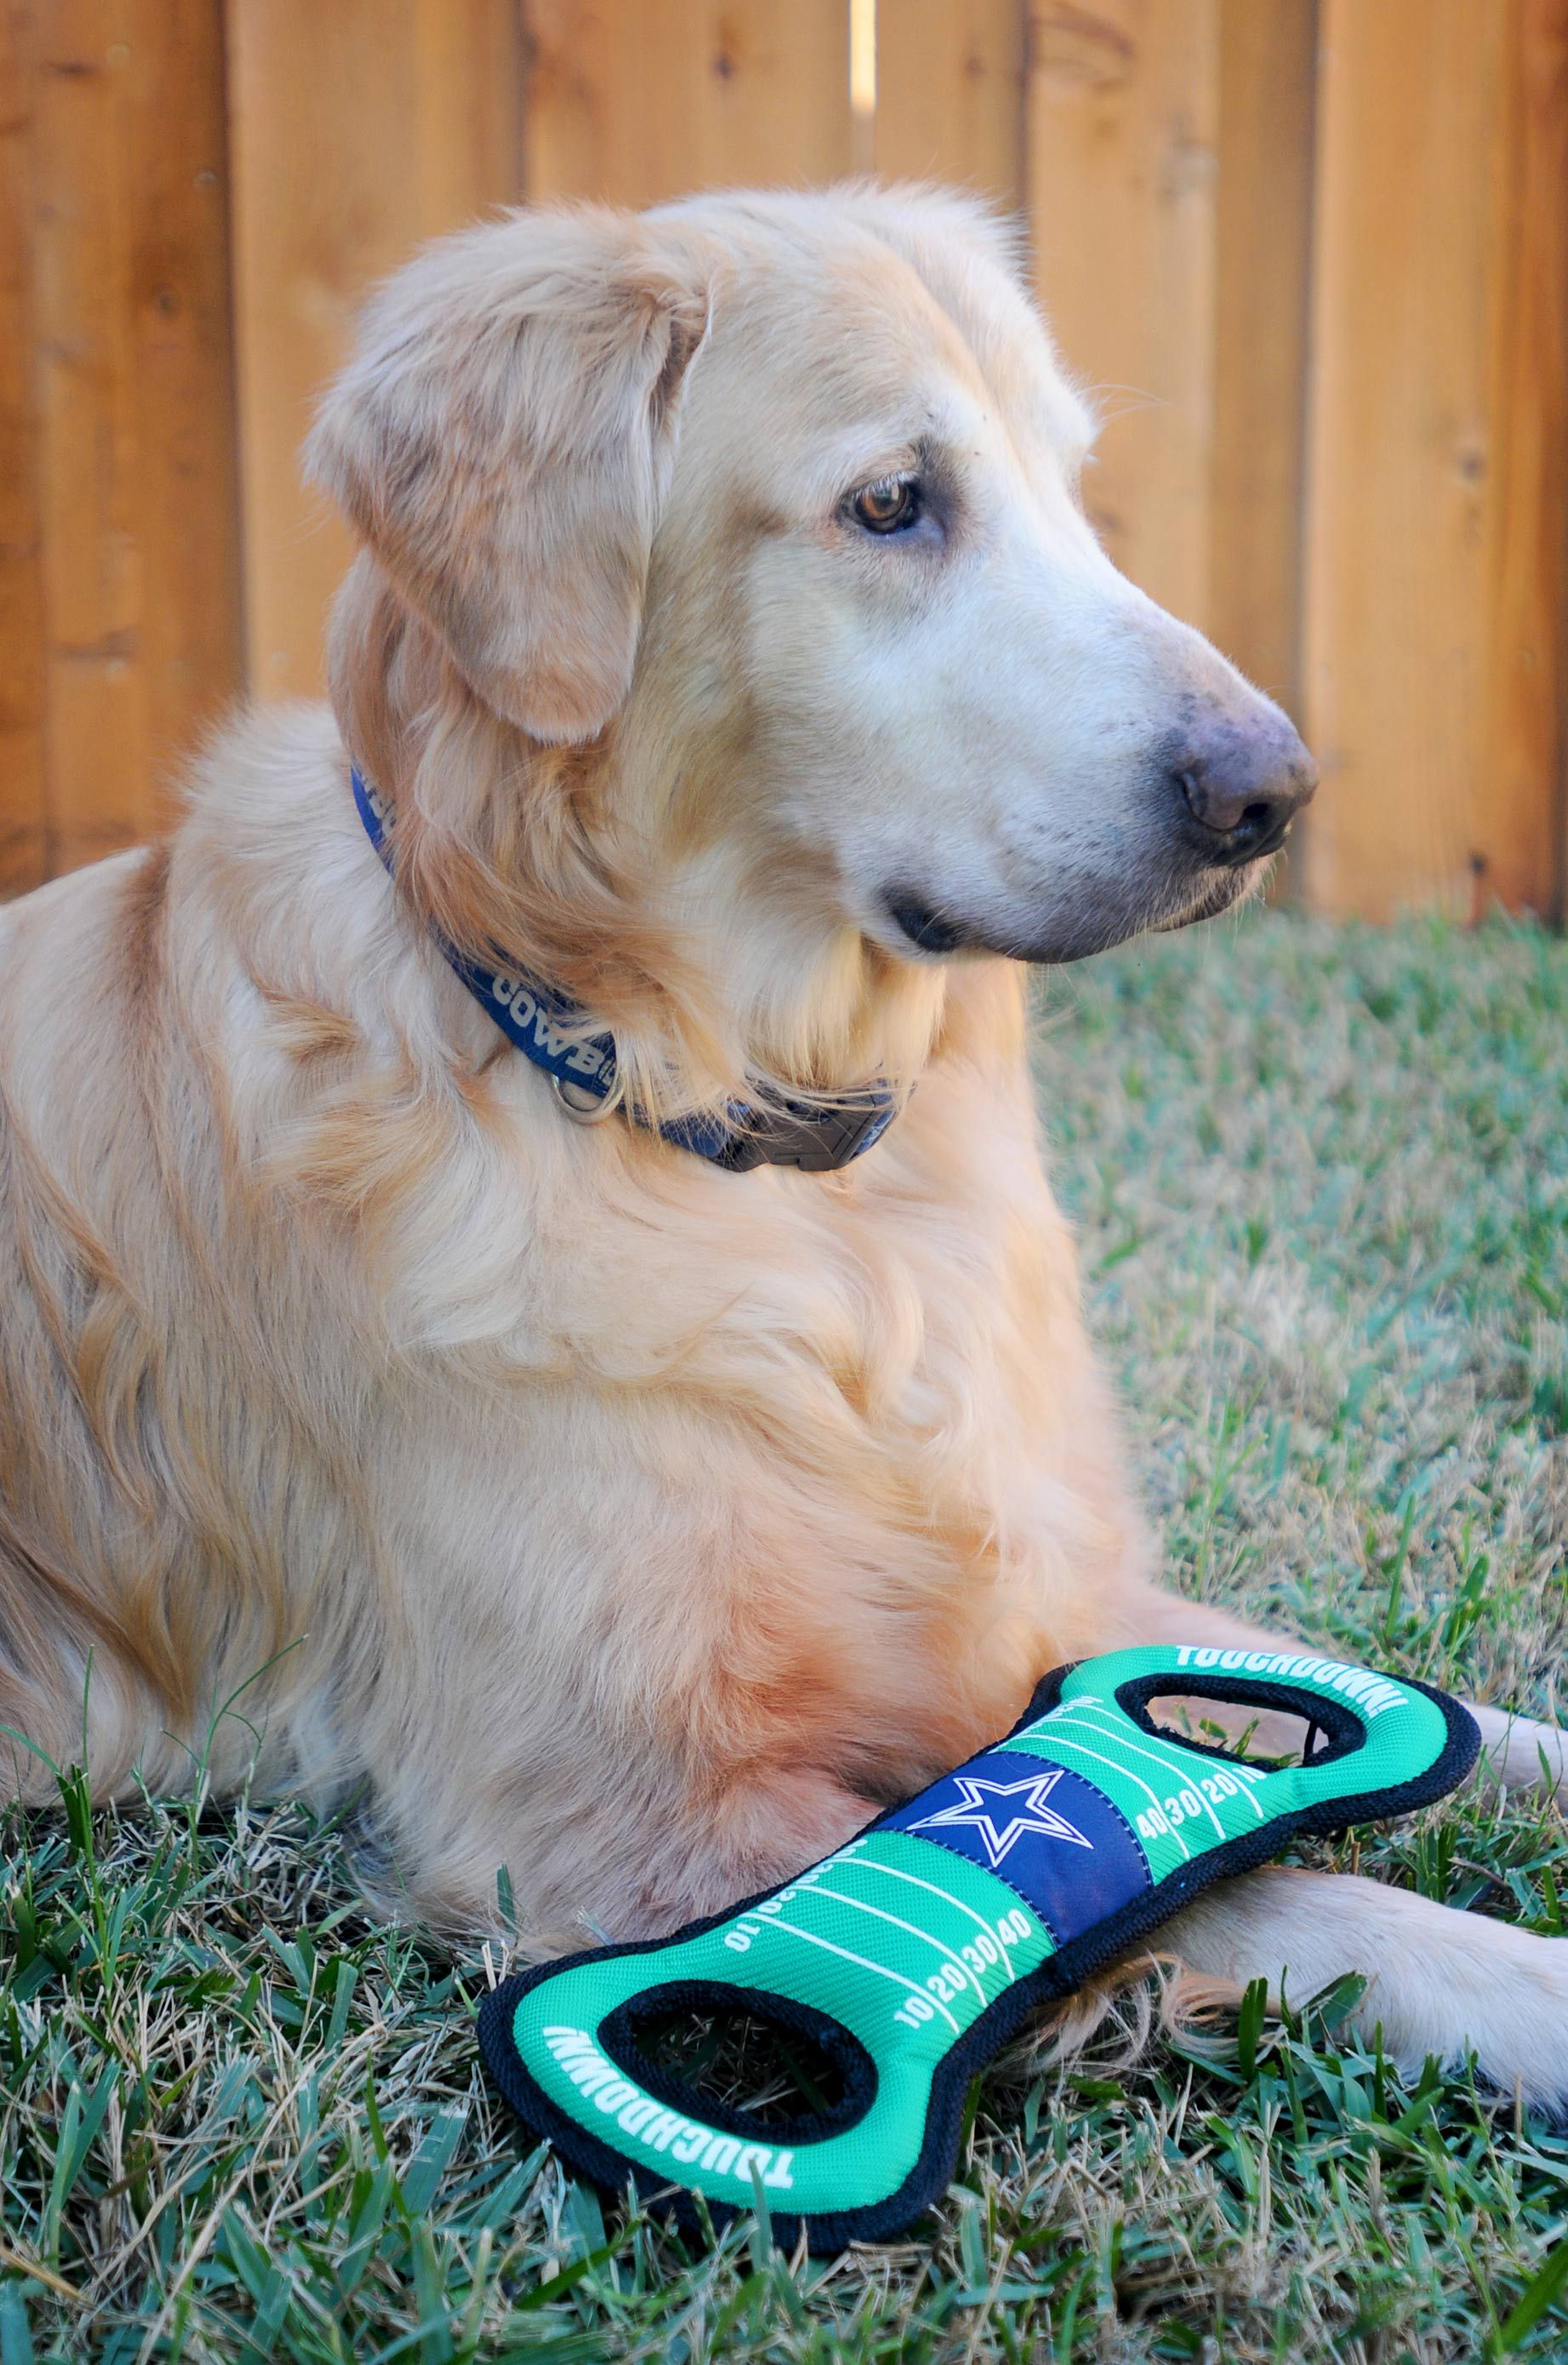 He loves his Dallas Cowboys toy! Golden retriever mom